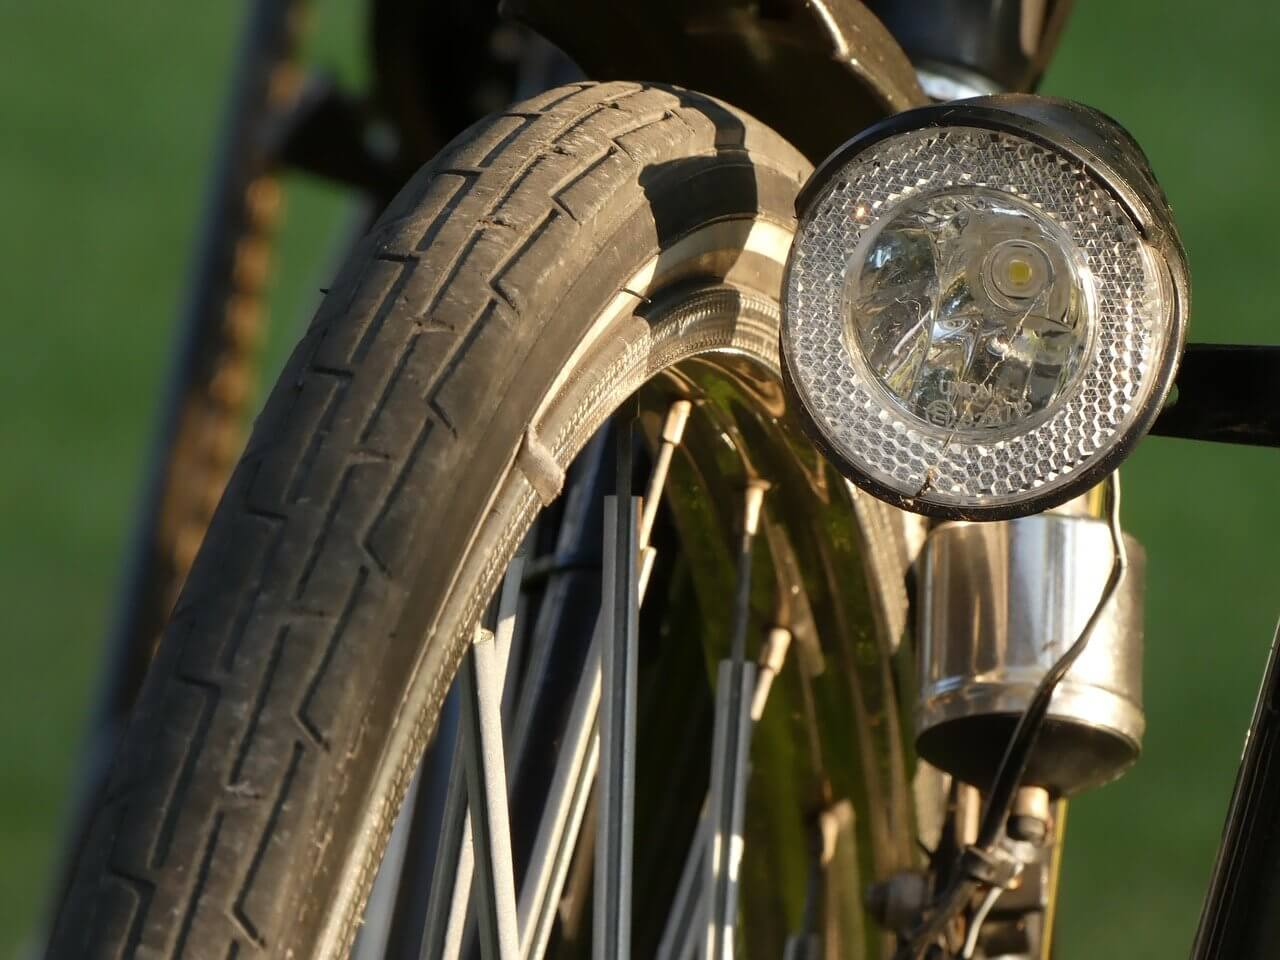 dynamo lights for bicycles